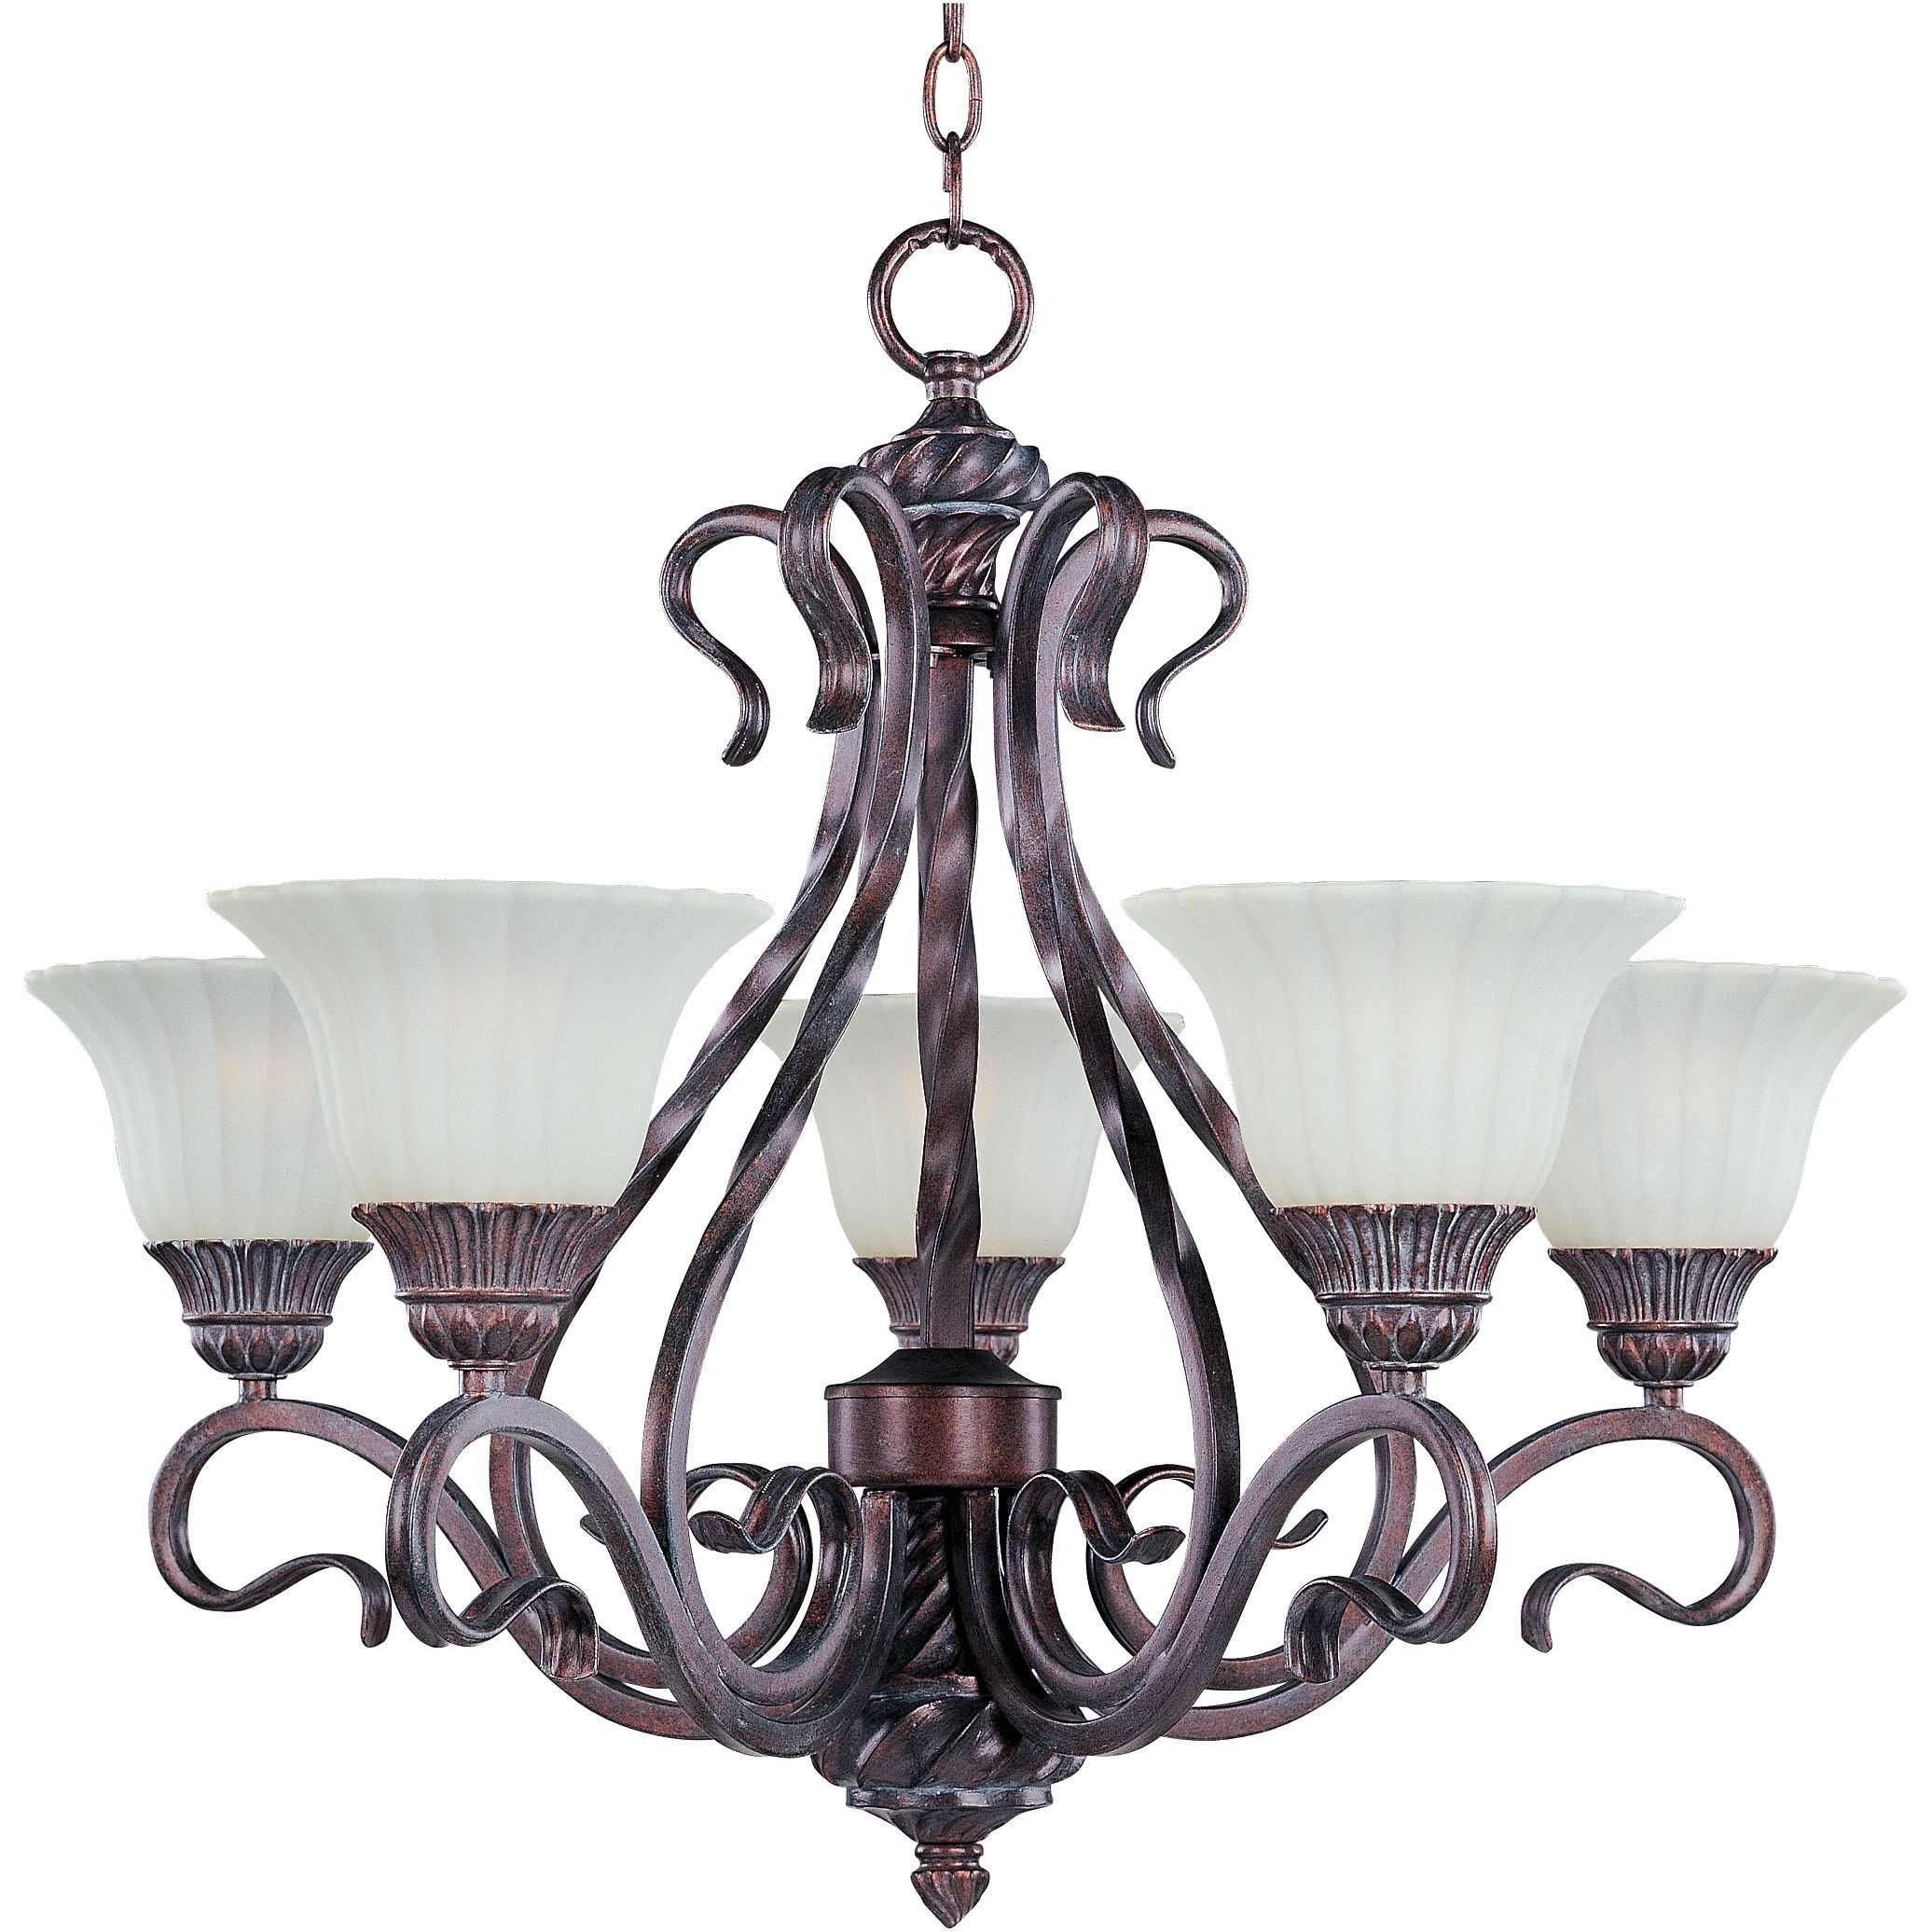 The Mediterranean Italian influenced Via Roma five light Chandelier